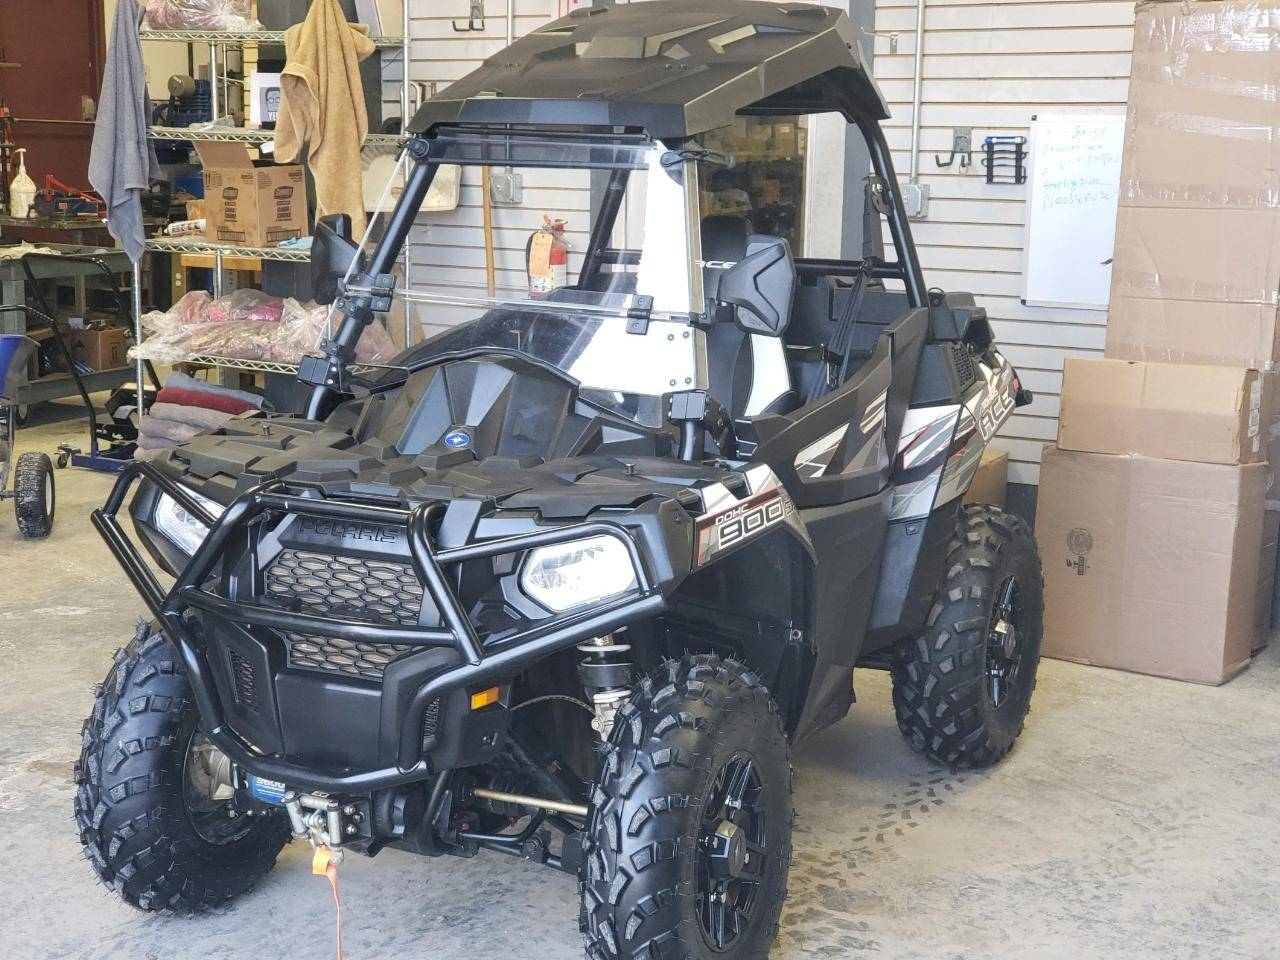 2016 Polaris ACE 900 SP in Beaver Falls, Pennsylvania - Photo 1